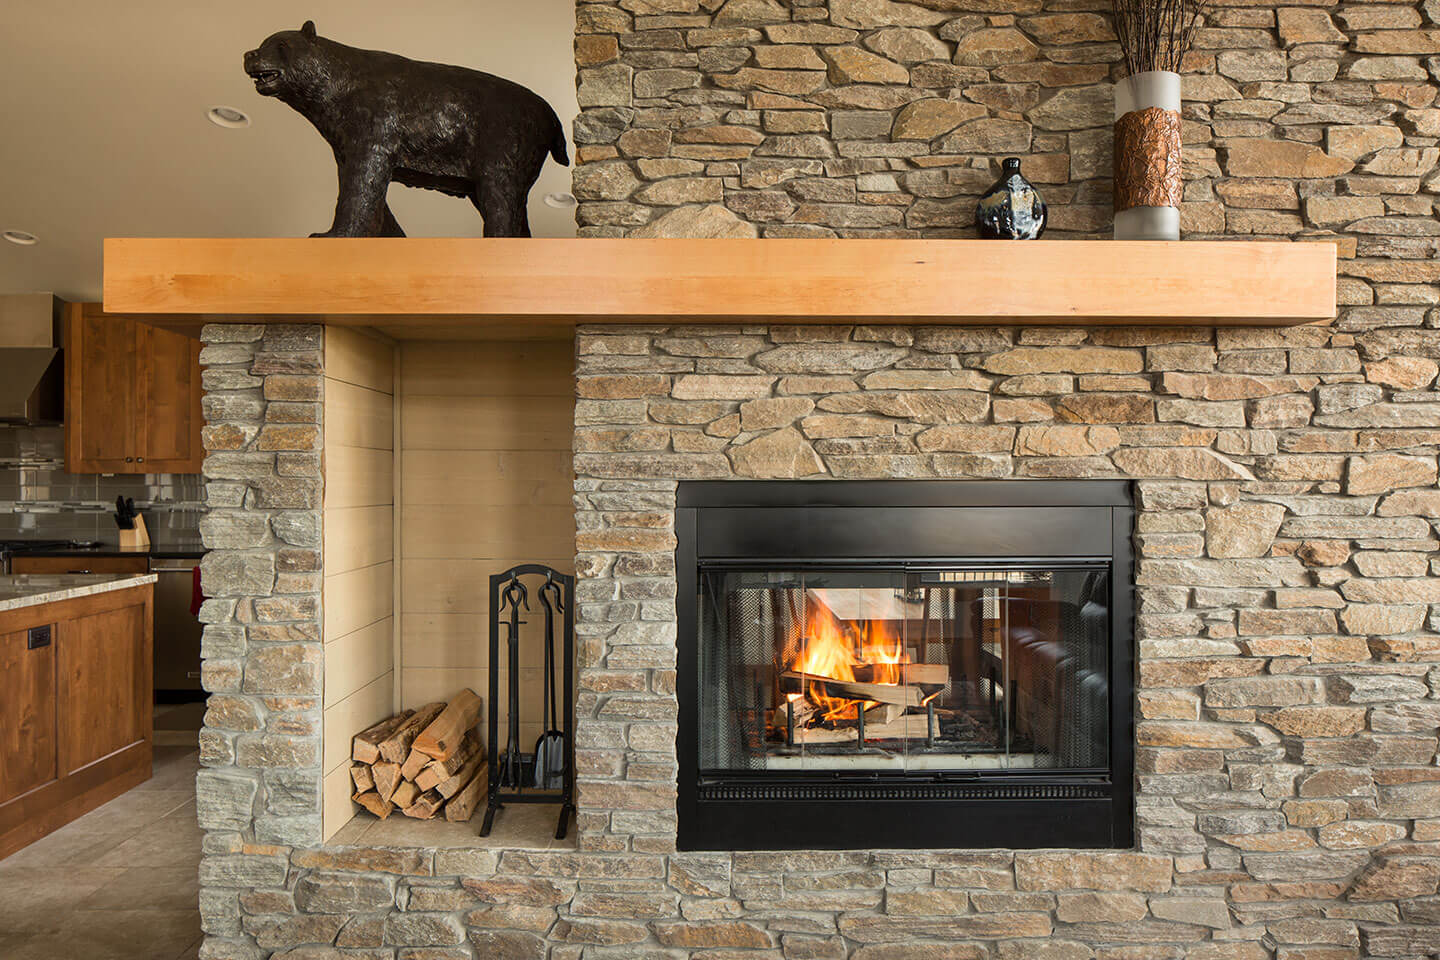 Montana moss rock around enclosed fireplace - black bear statue